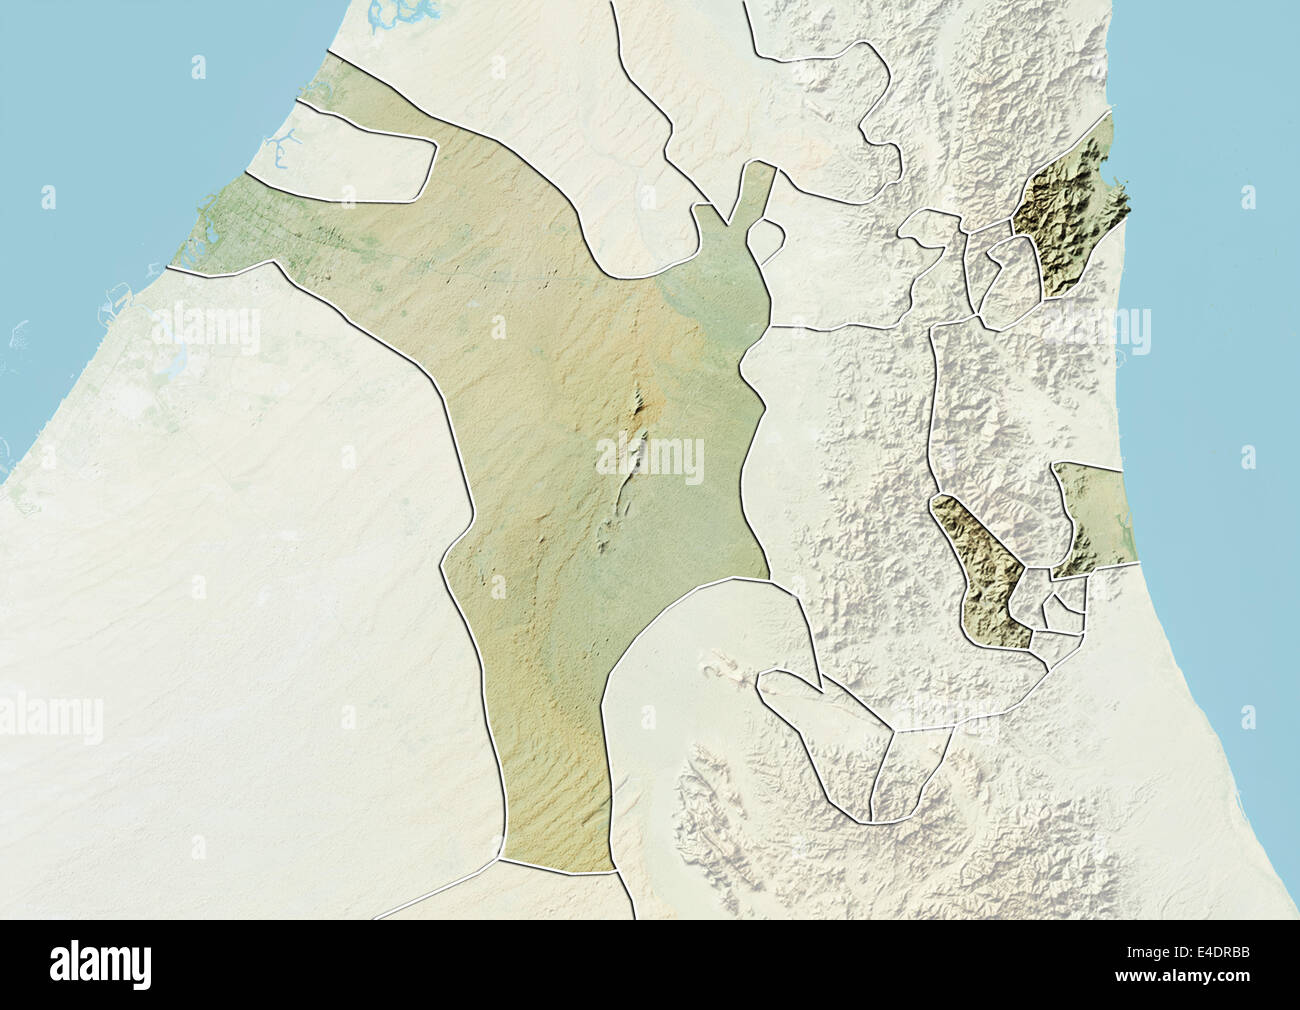 Emirate of Sharjah United Arab Emirates Relief Map Stock Photo